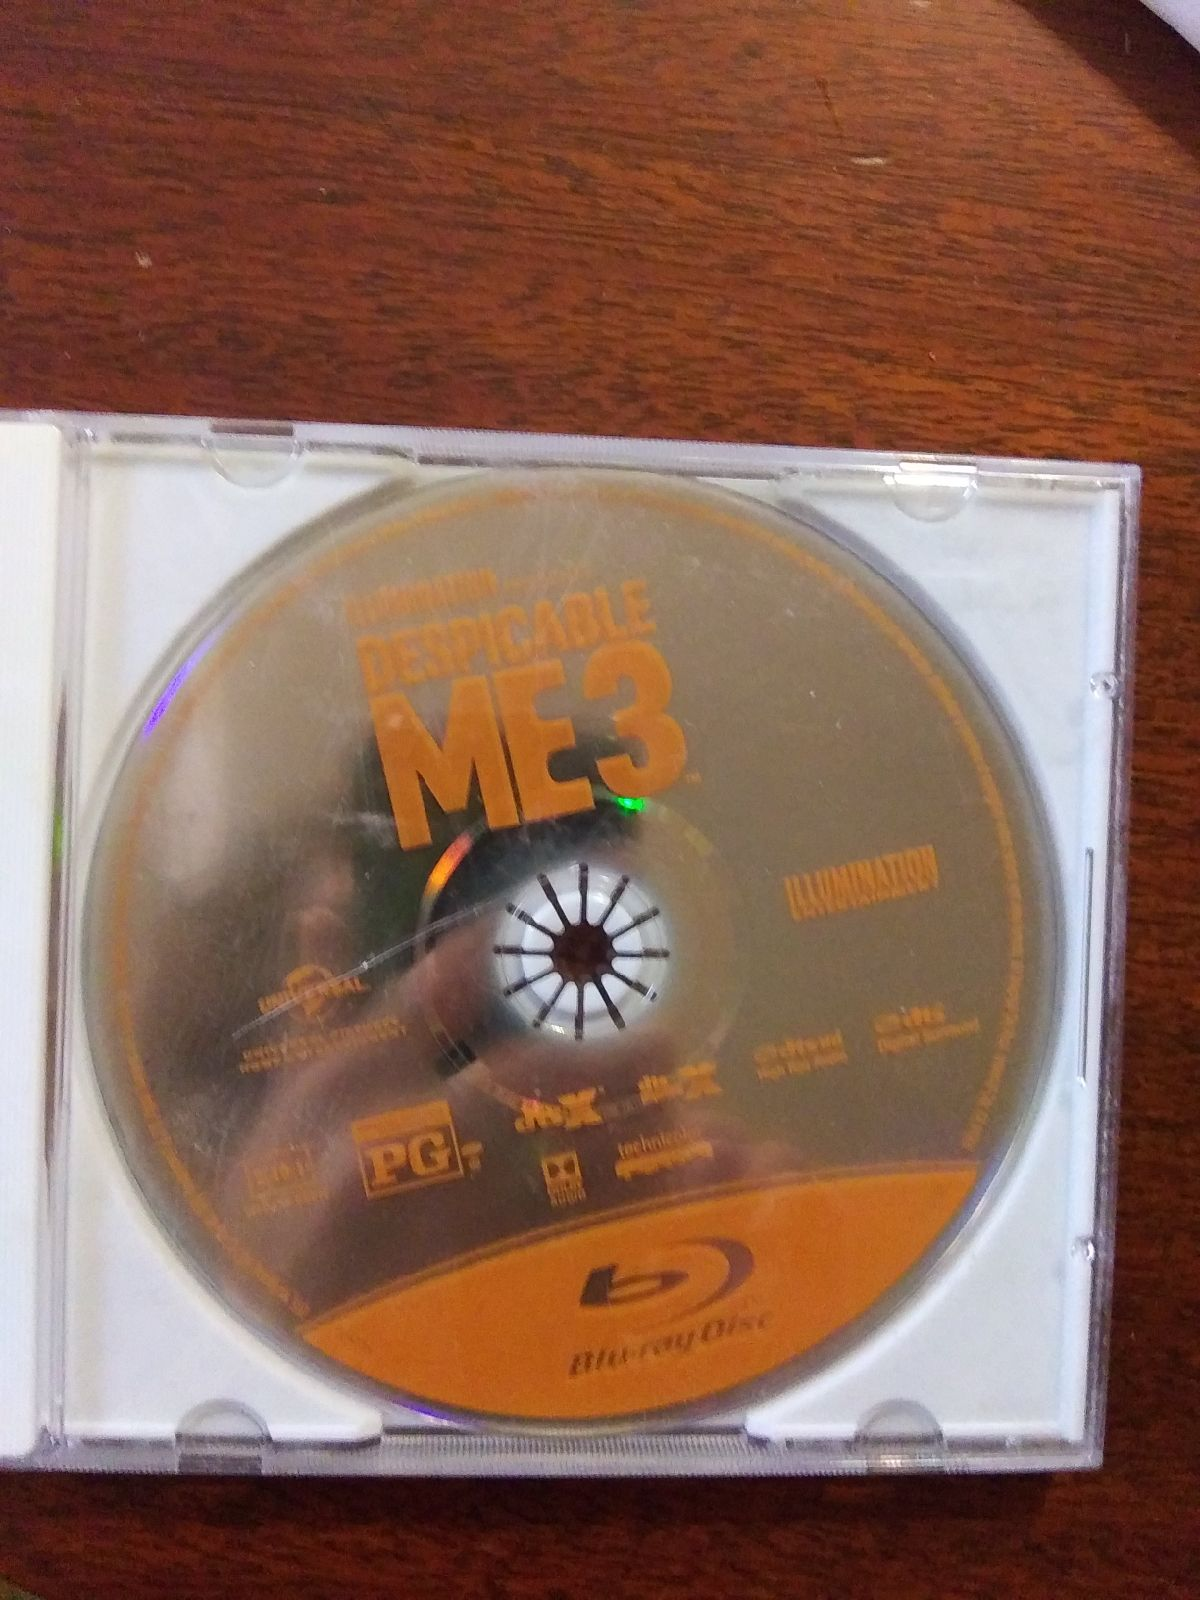 Despicable Me 3 blue ray